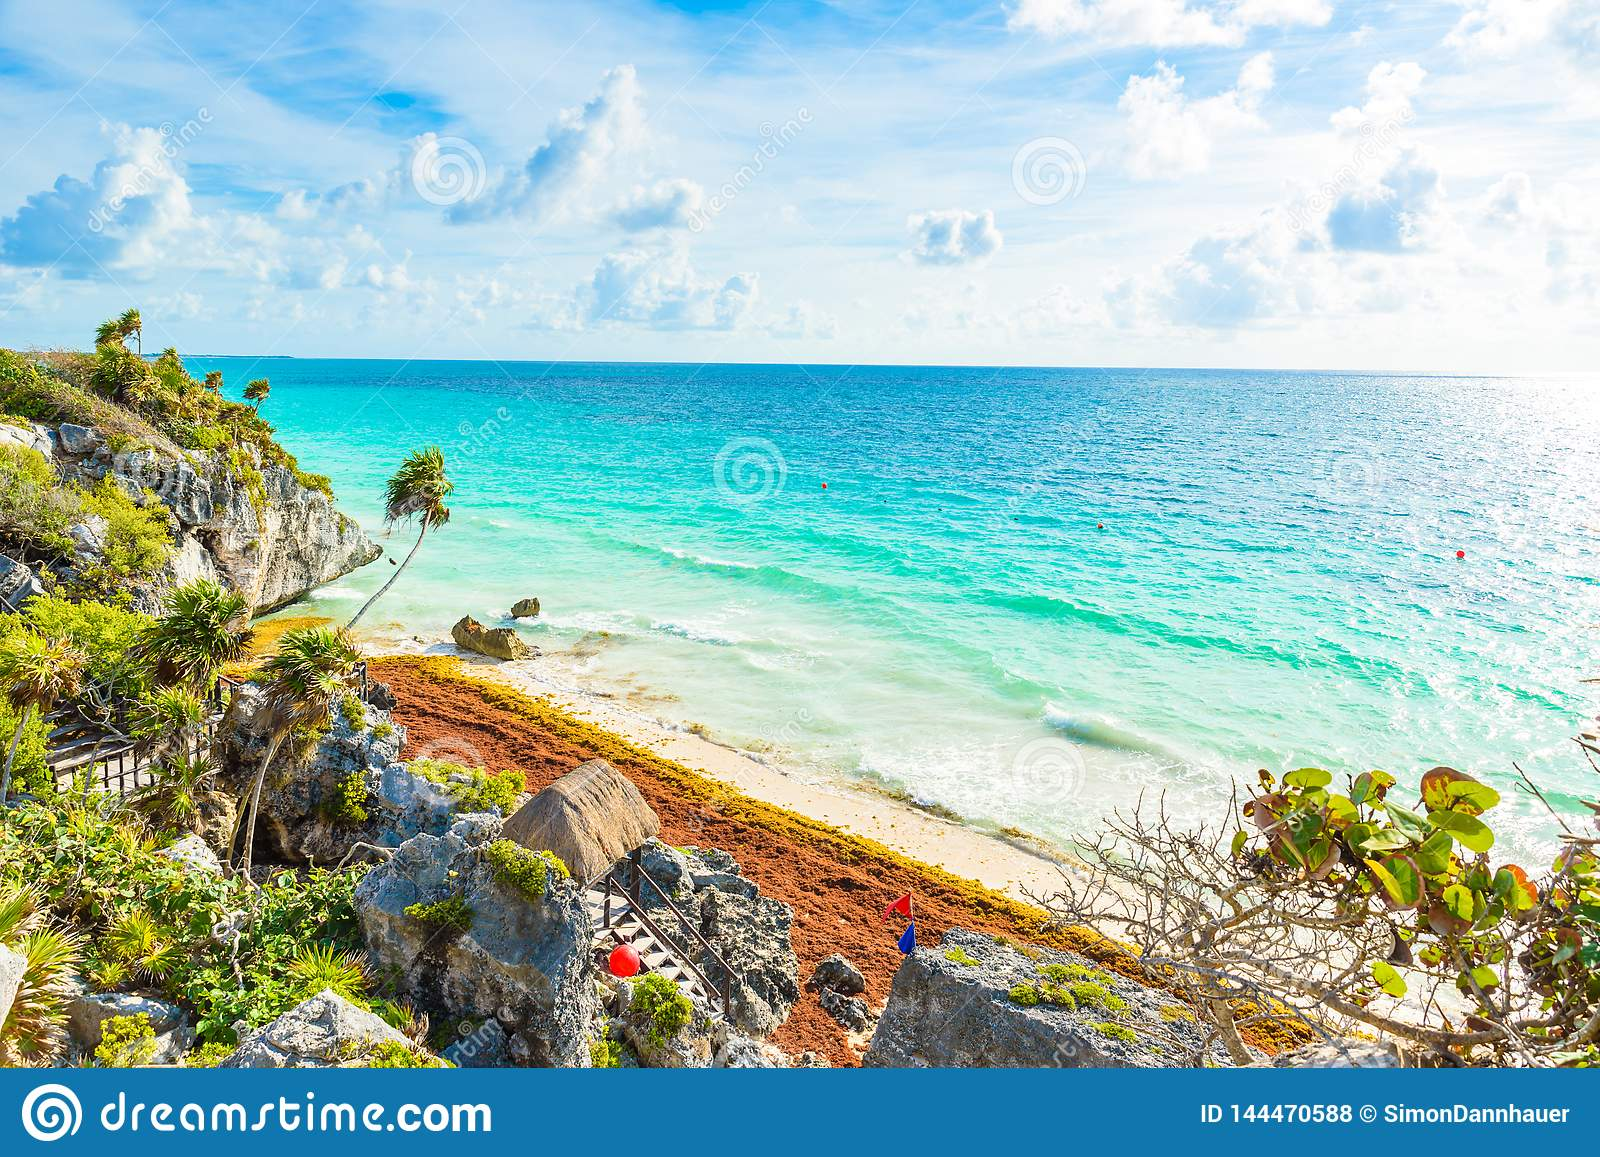 Paradise Scenery of Tulum at tropical coast and beach. Mayan ruins of Tulum, Quintana Roo, Mexico